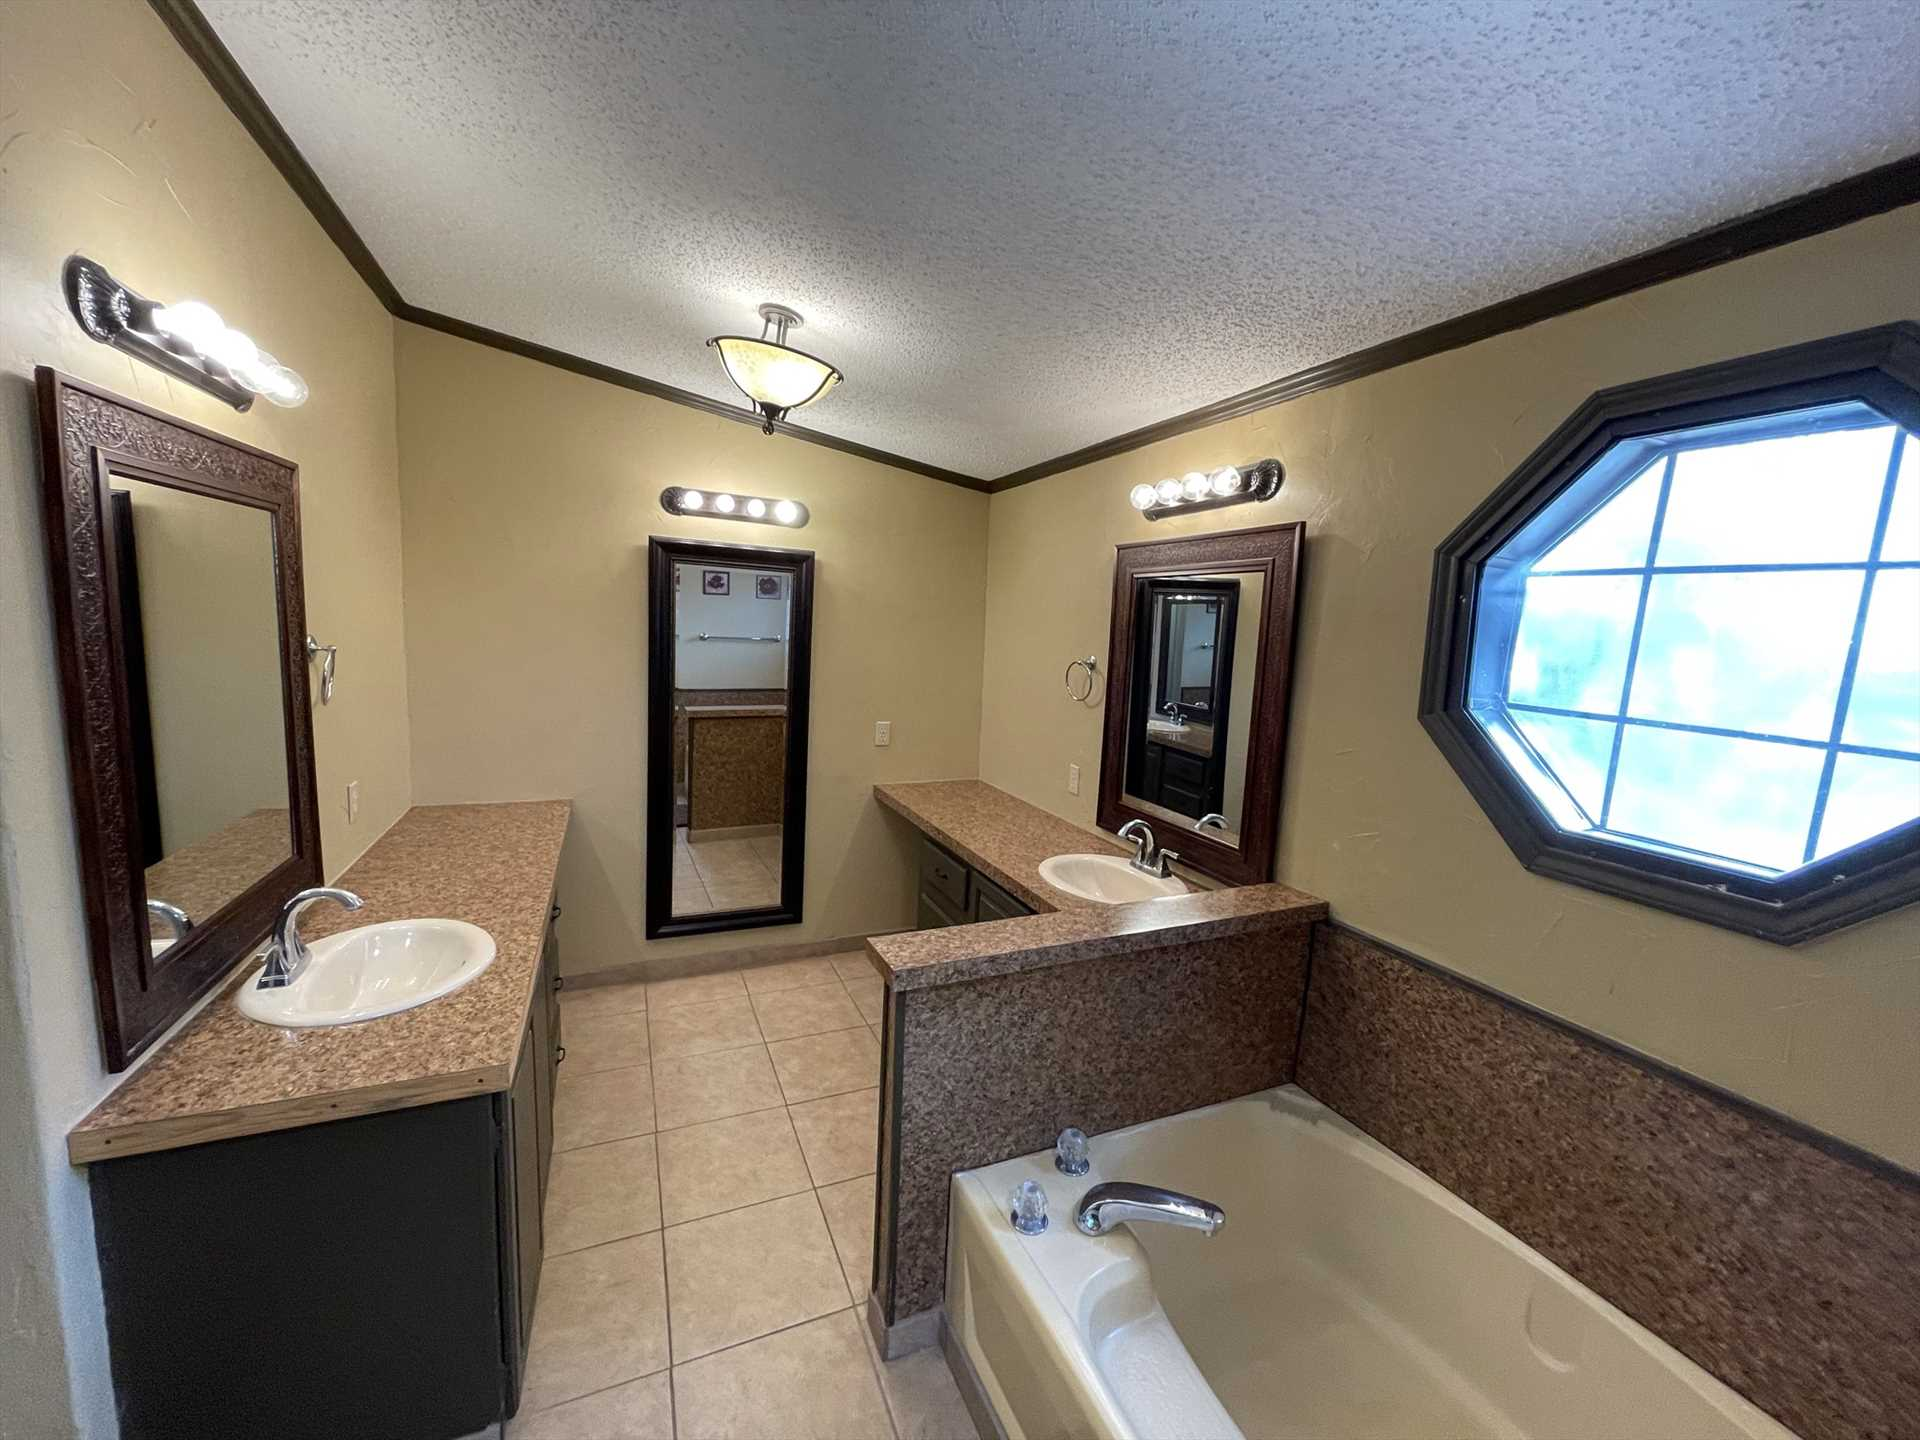 Sharp and modern decor distinguishes the master bath of Rio Vista, which includes a roomy tub and separate shower.